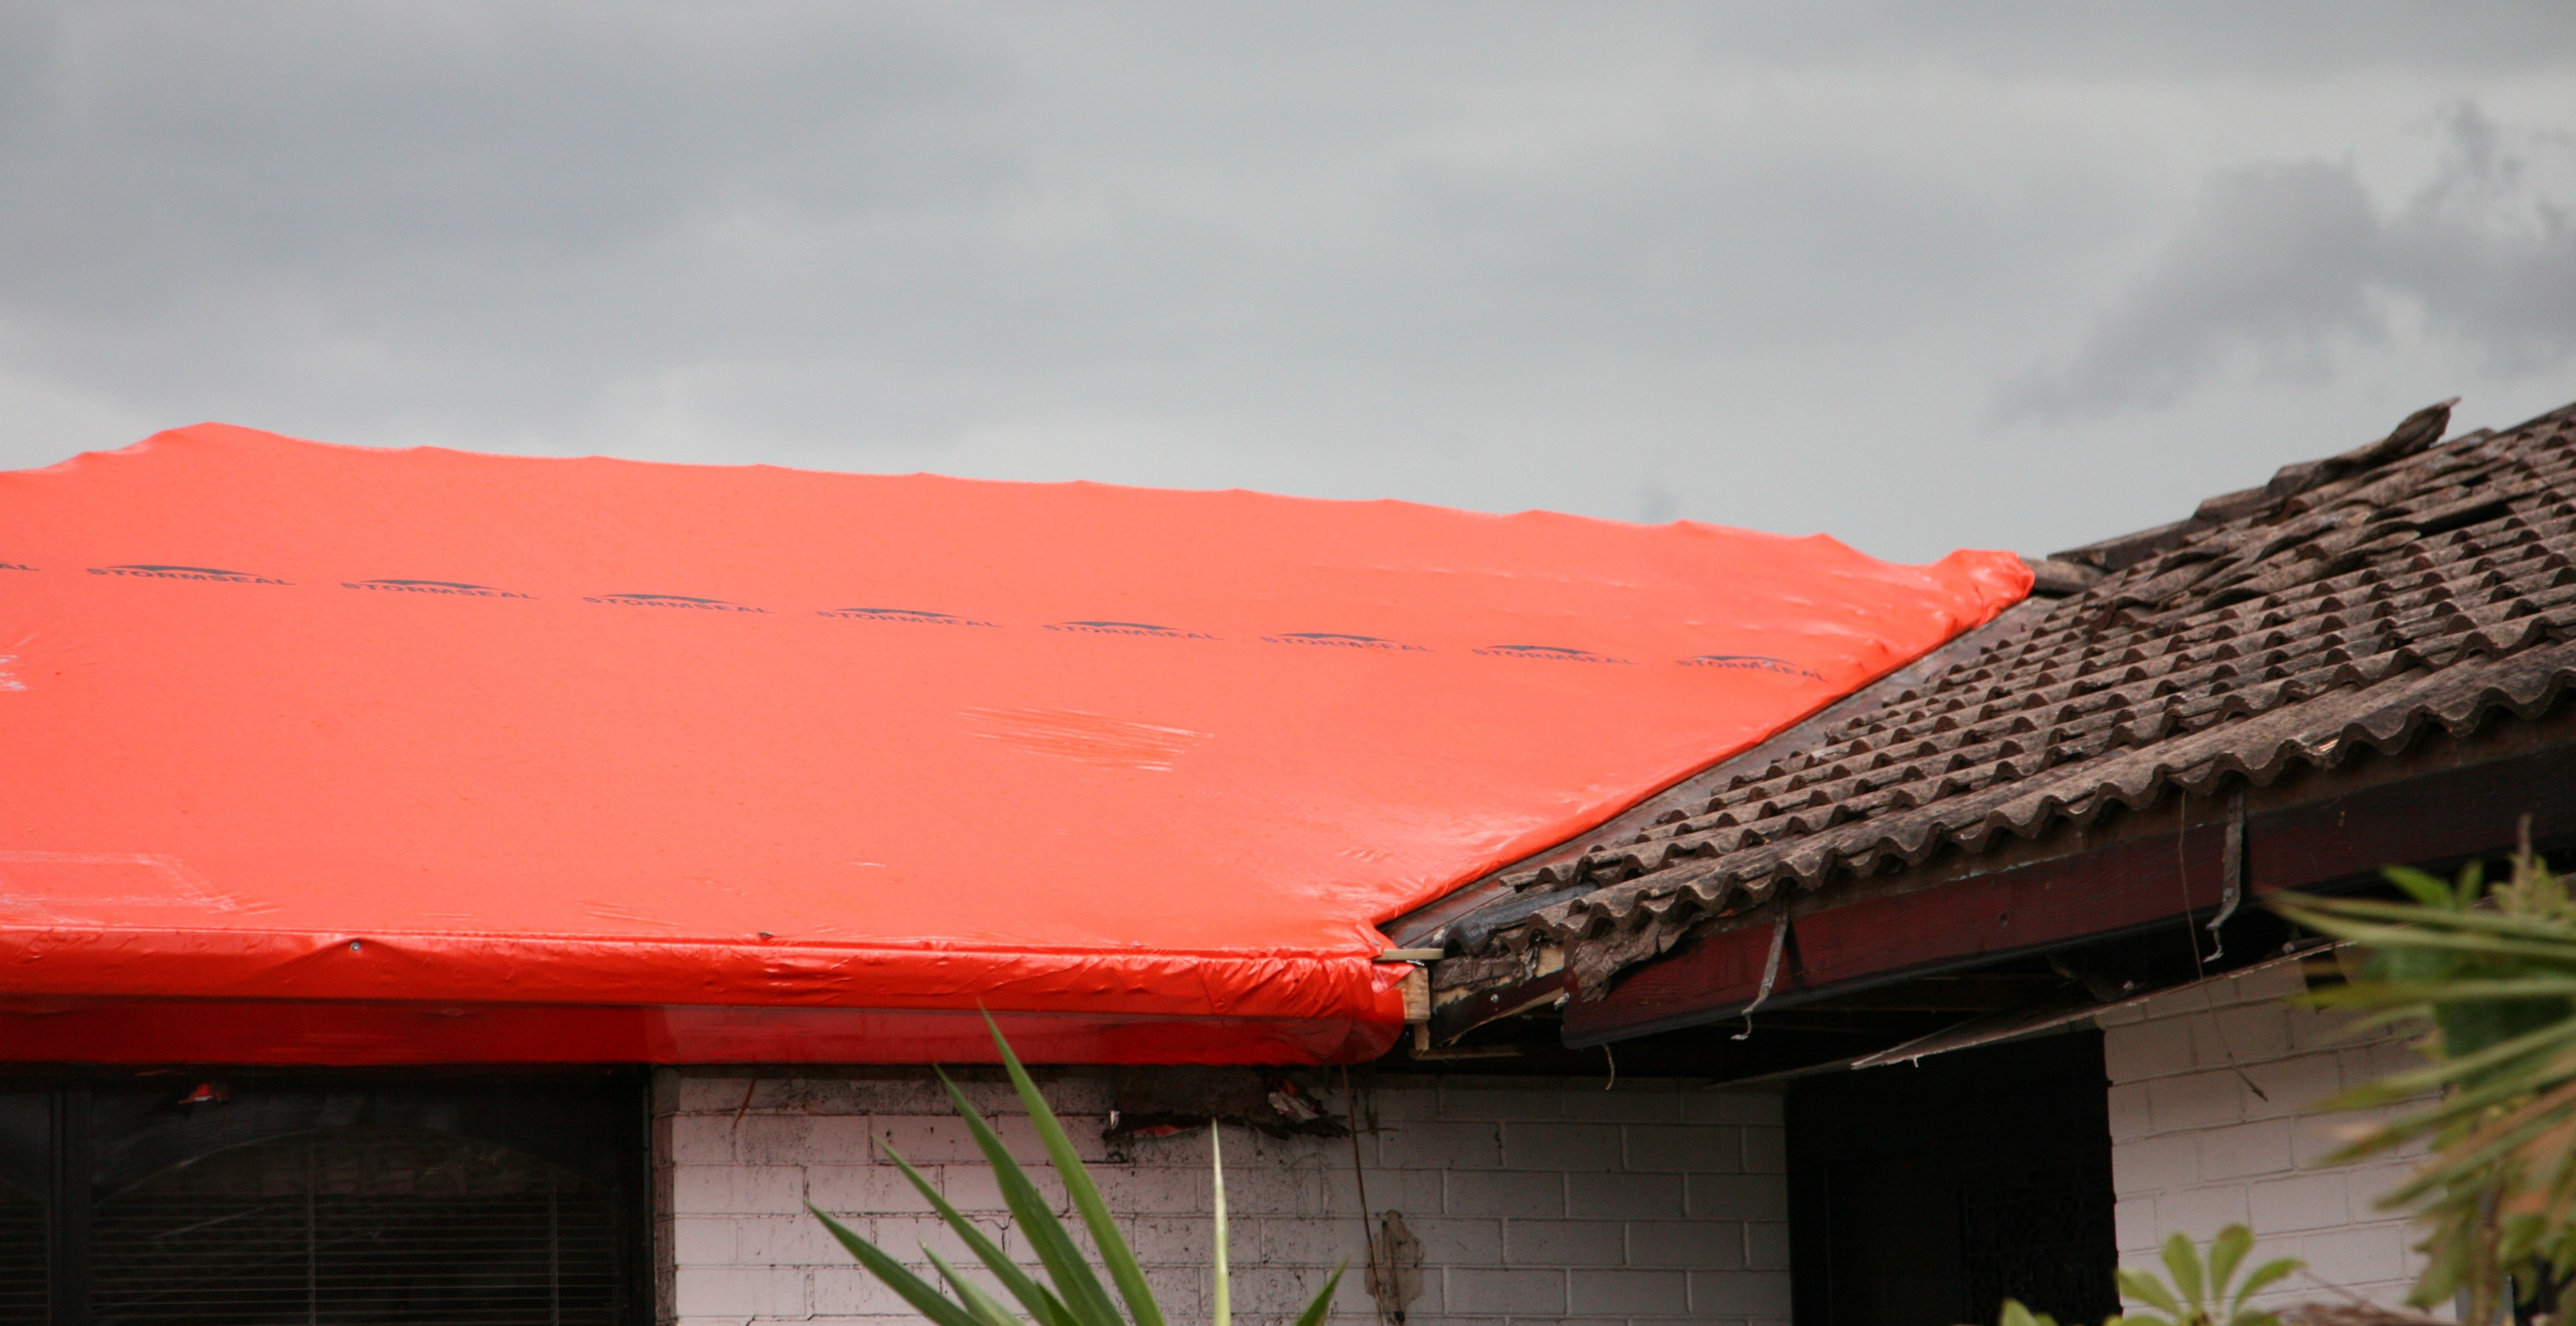 Stormseal for Emergencies: Stormseal weatherproofs buildings to prevent costly further damage